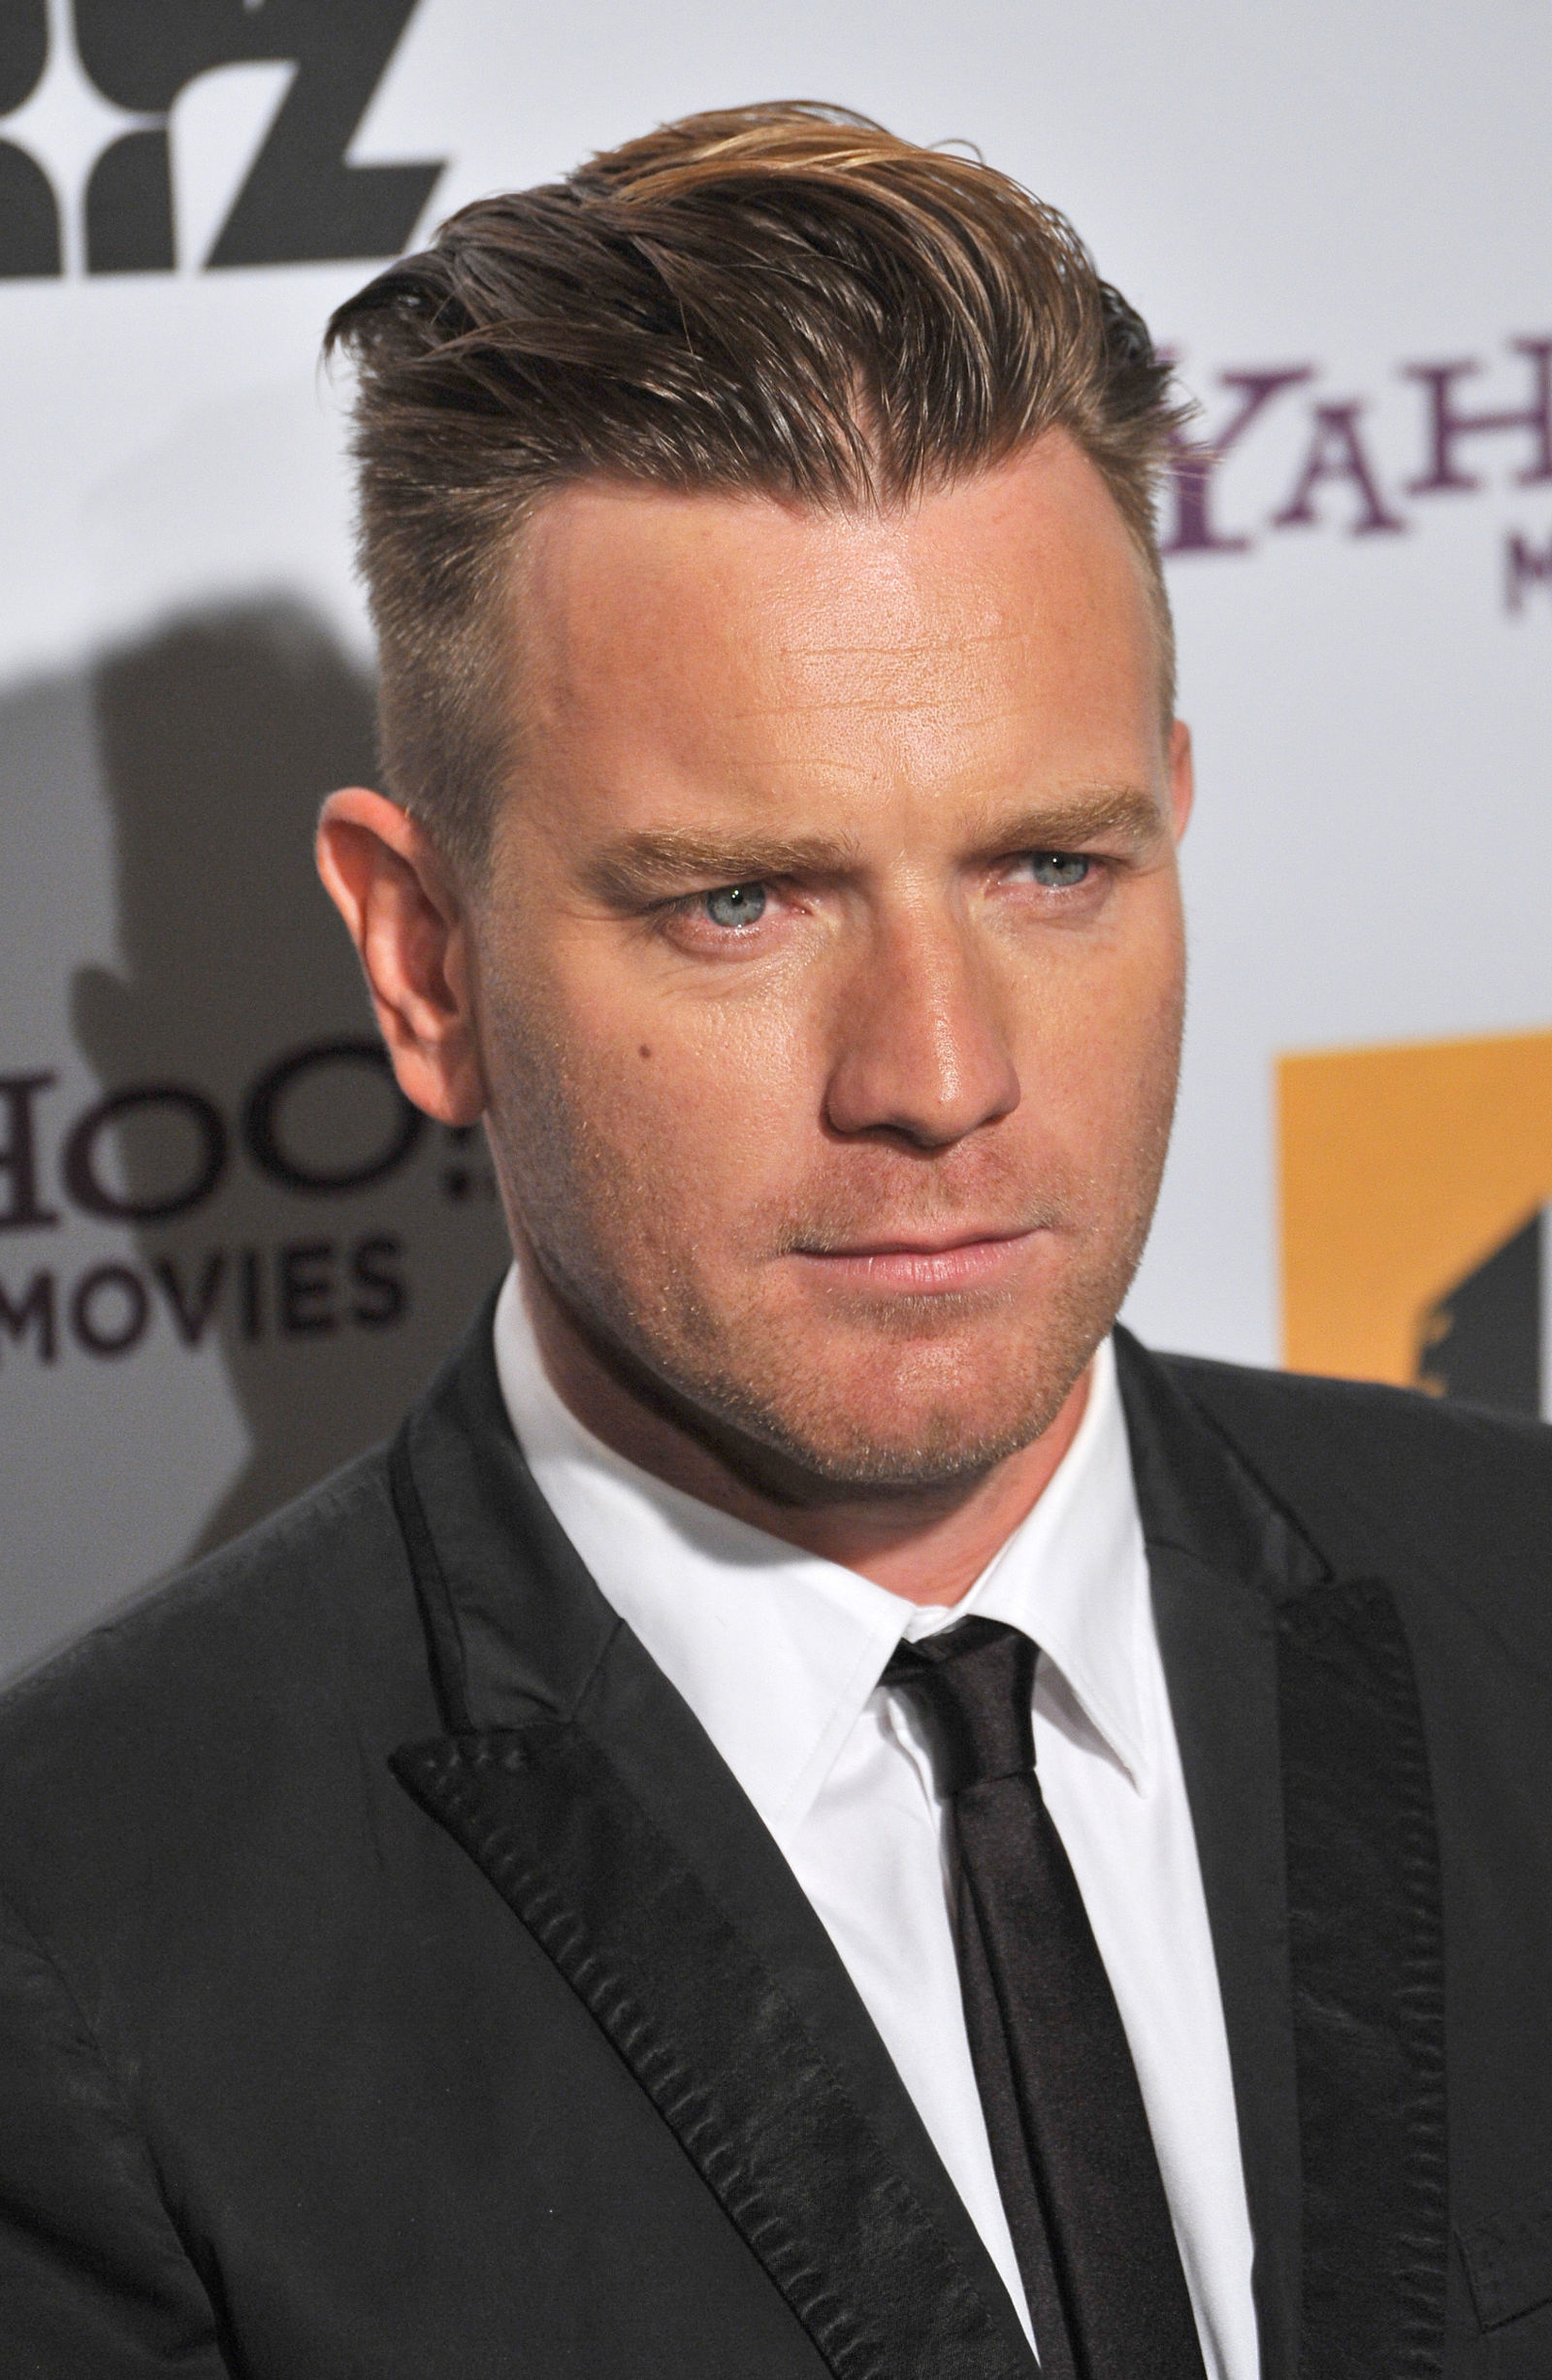 Ewan McGregor slicked back undercut